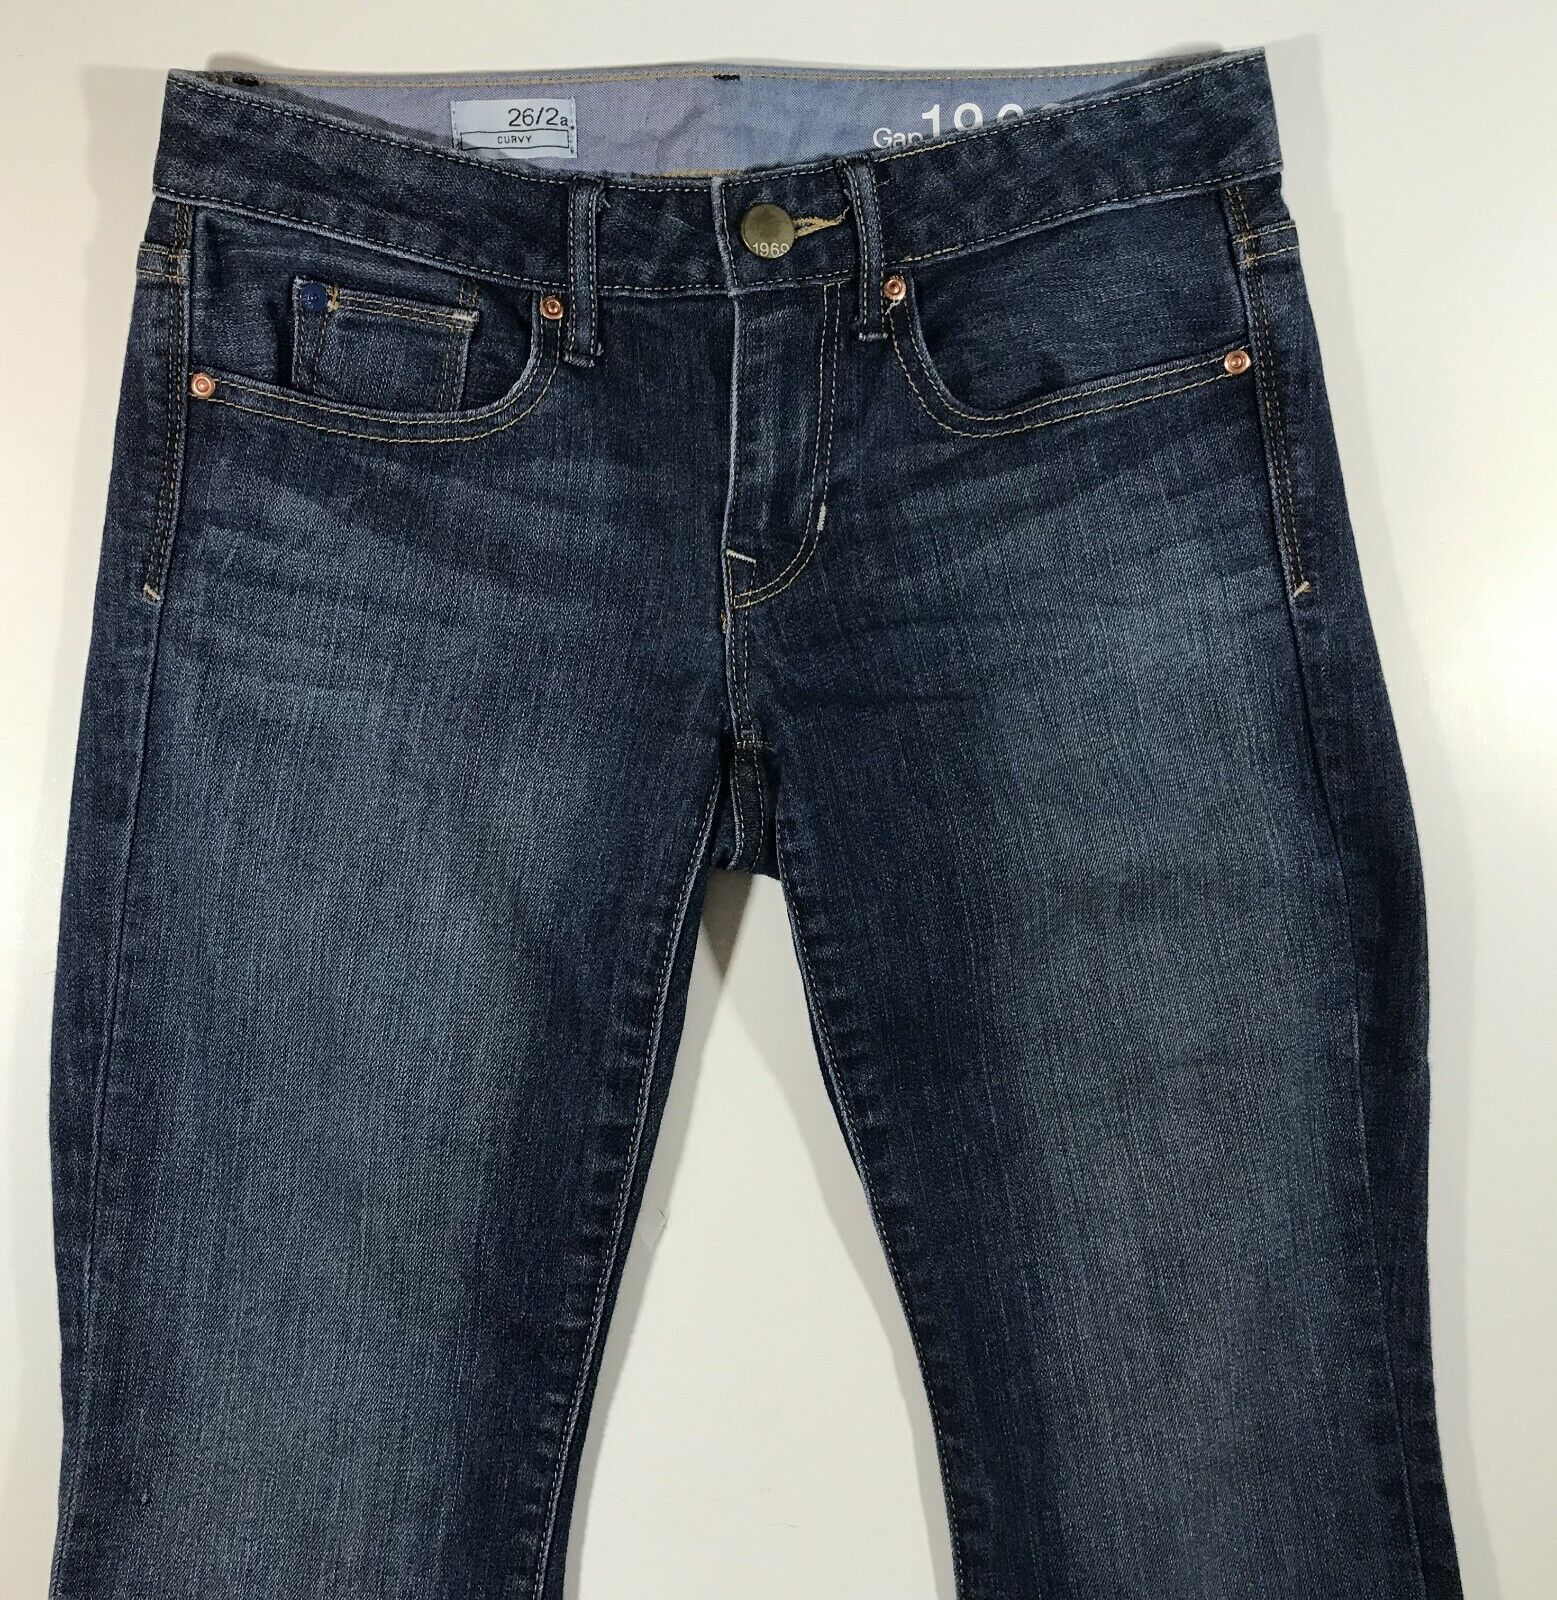 Gap 1969 - Curvy Jeans For Women's 26   2 bluee Pre-Owned 79% Cotton Denim